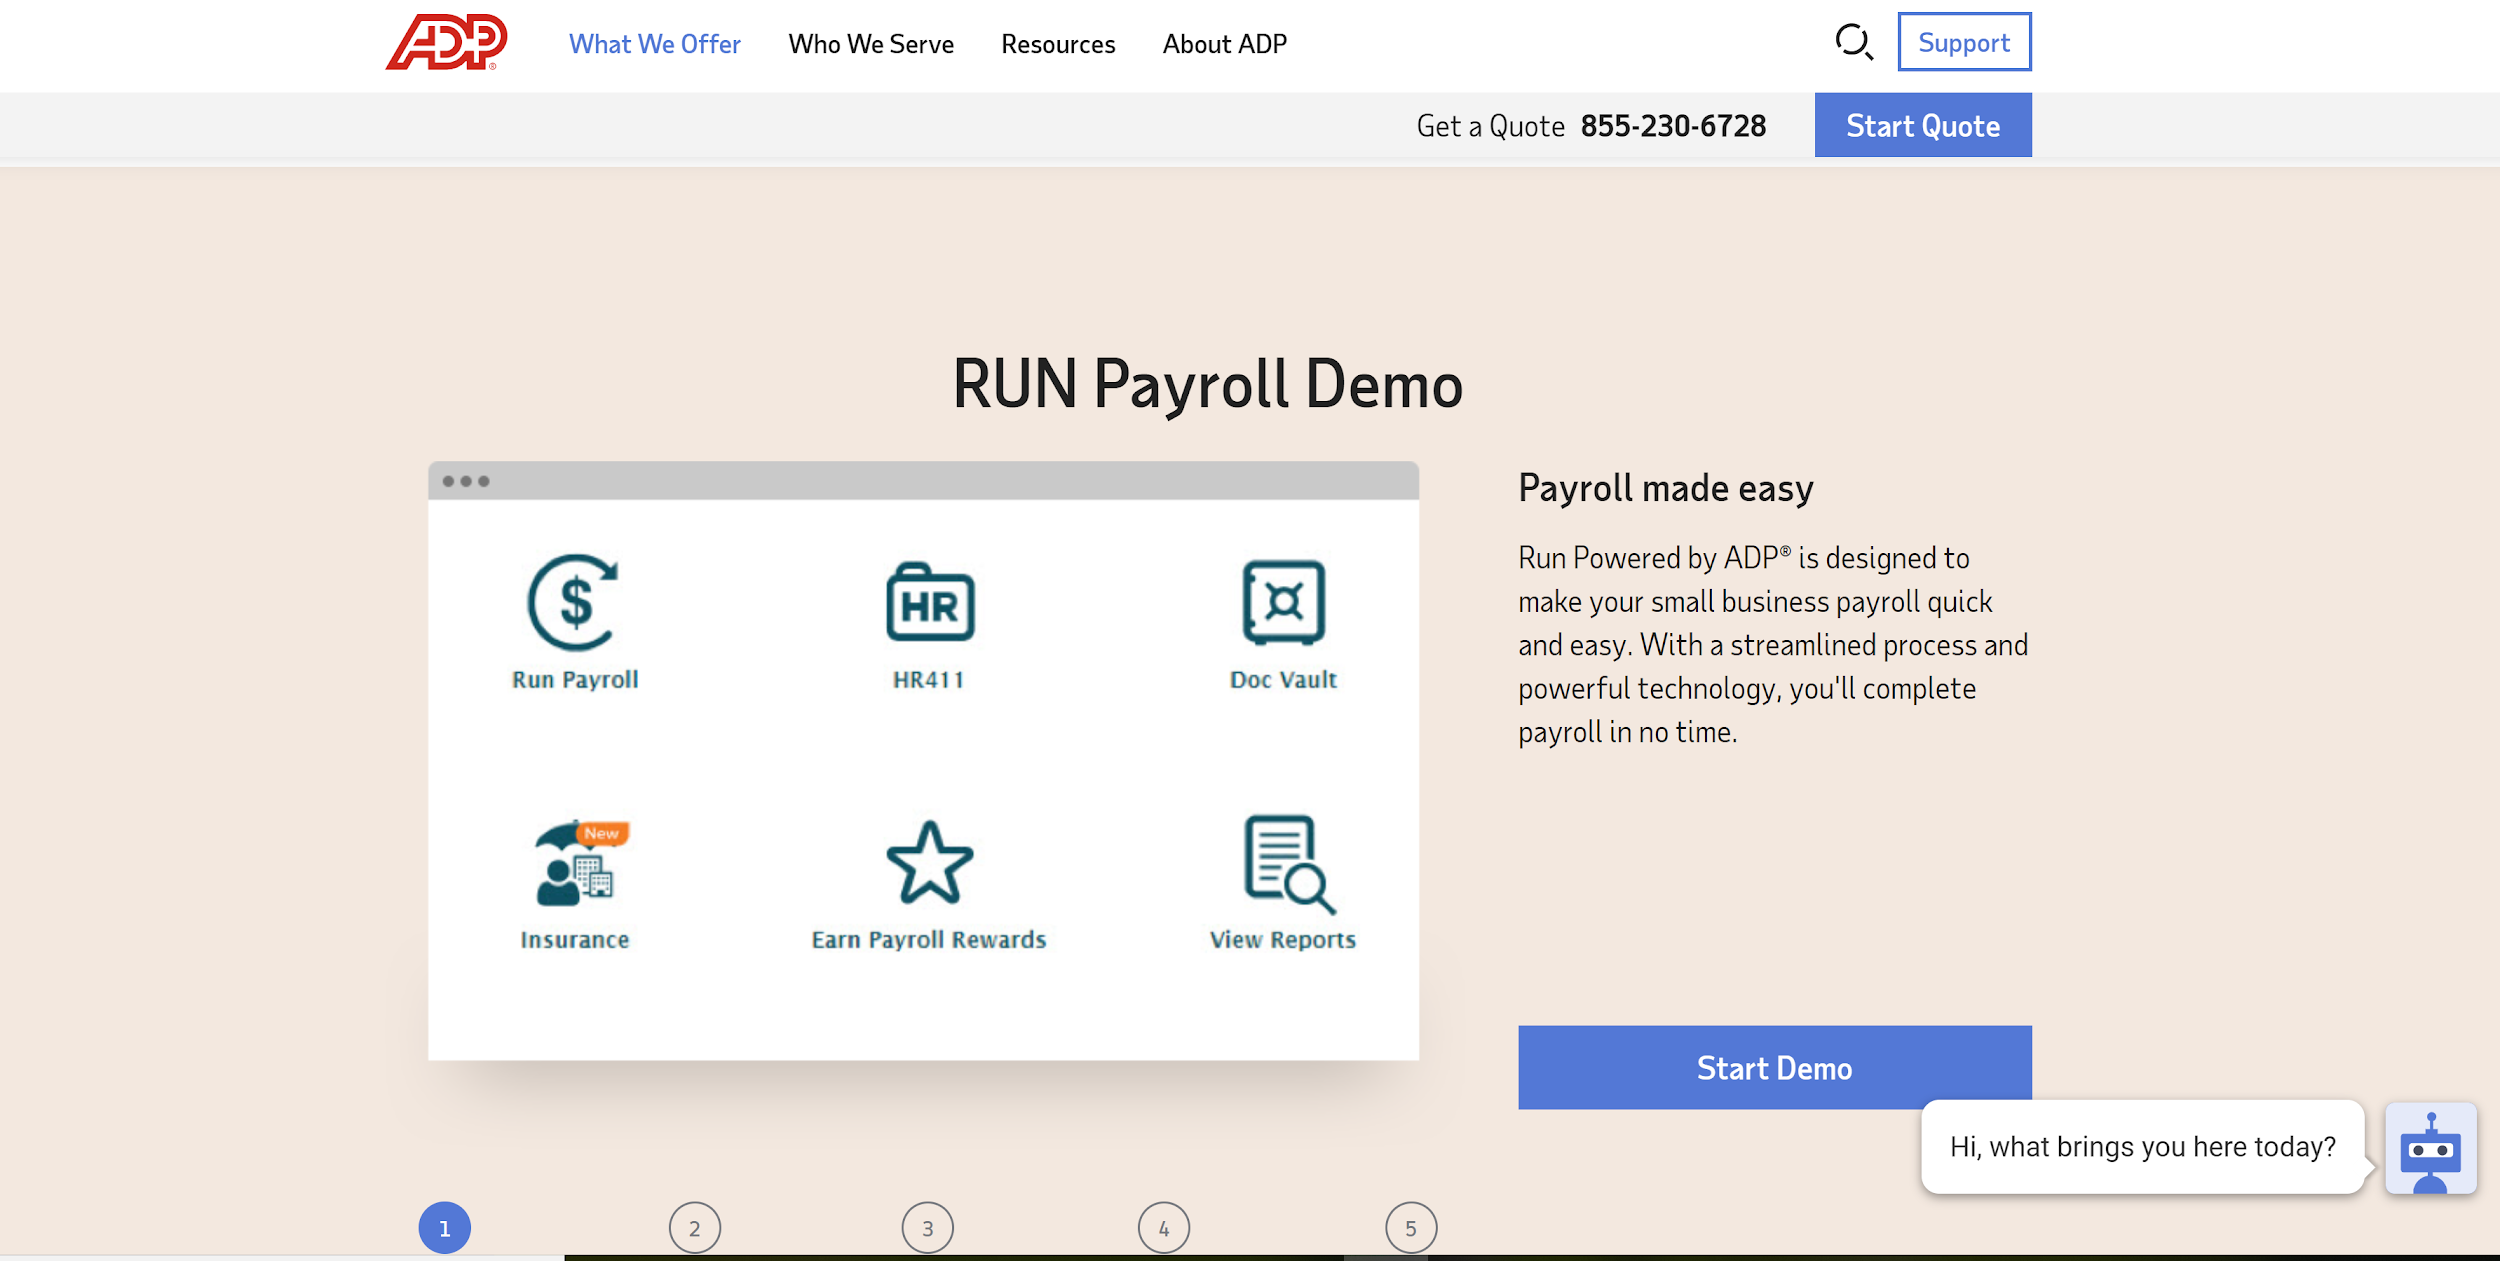 RUN Payroll Demo Page from ADP